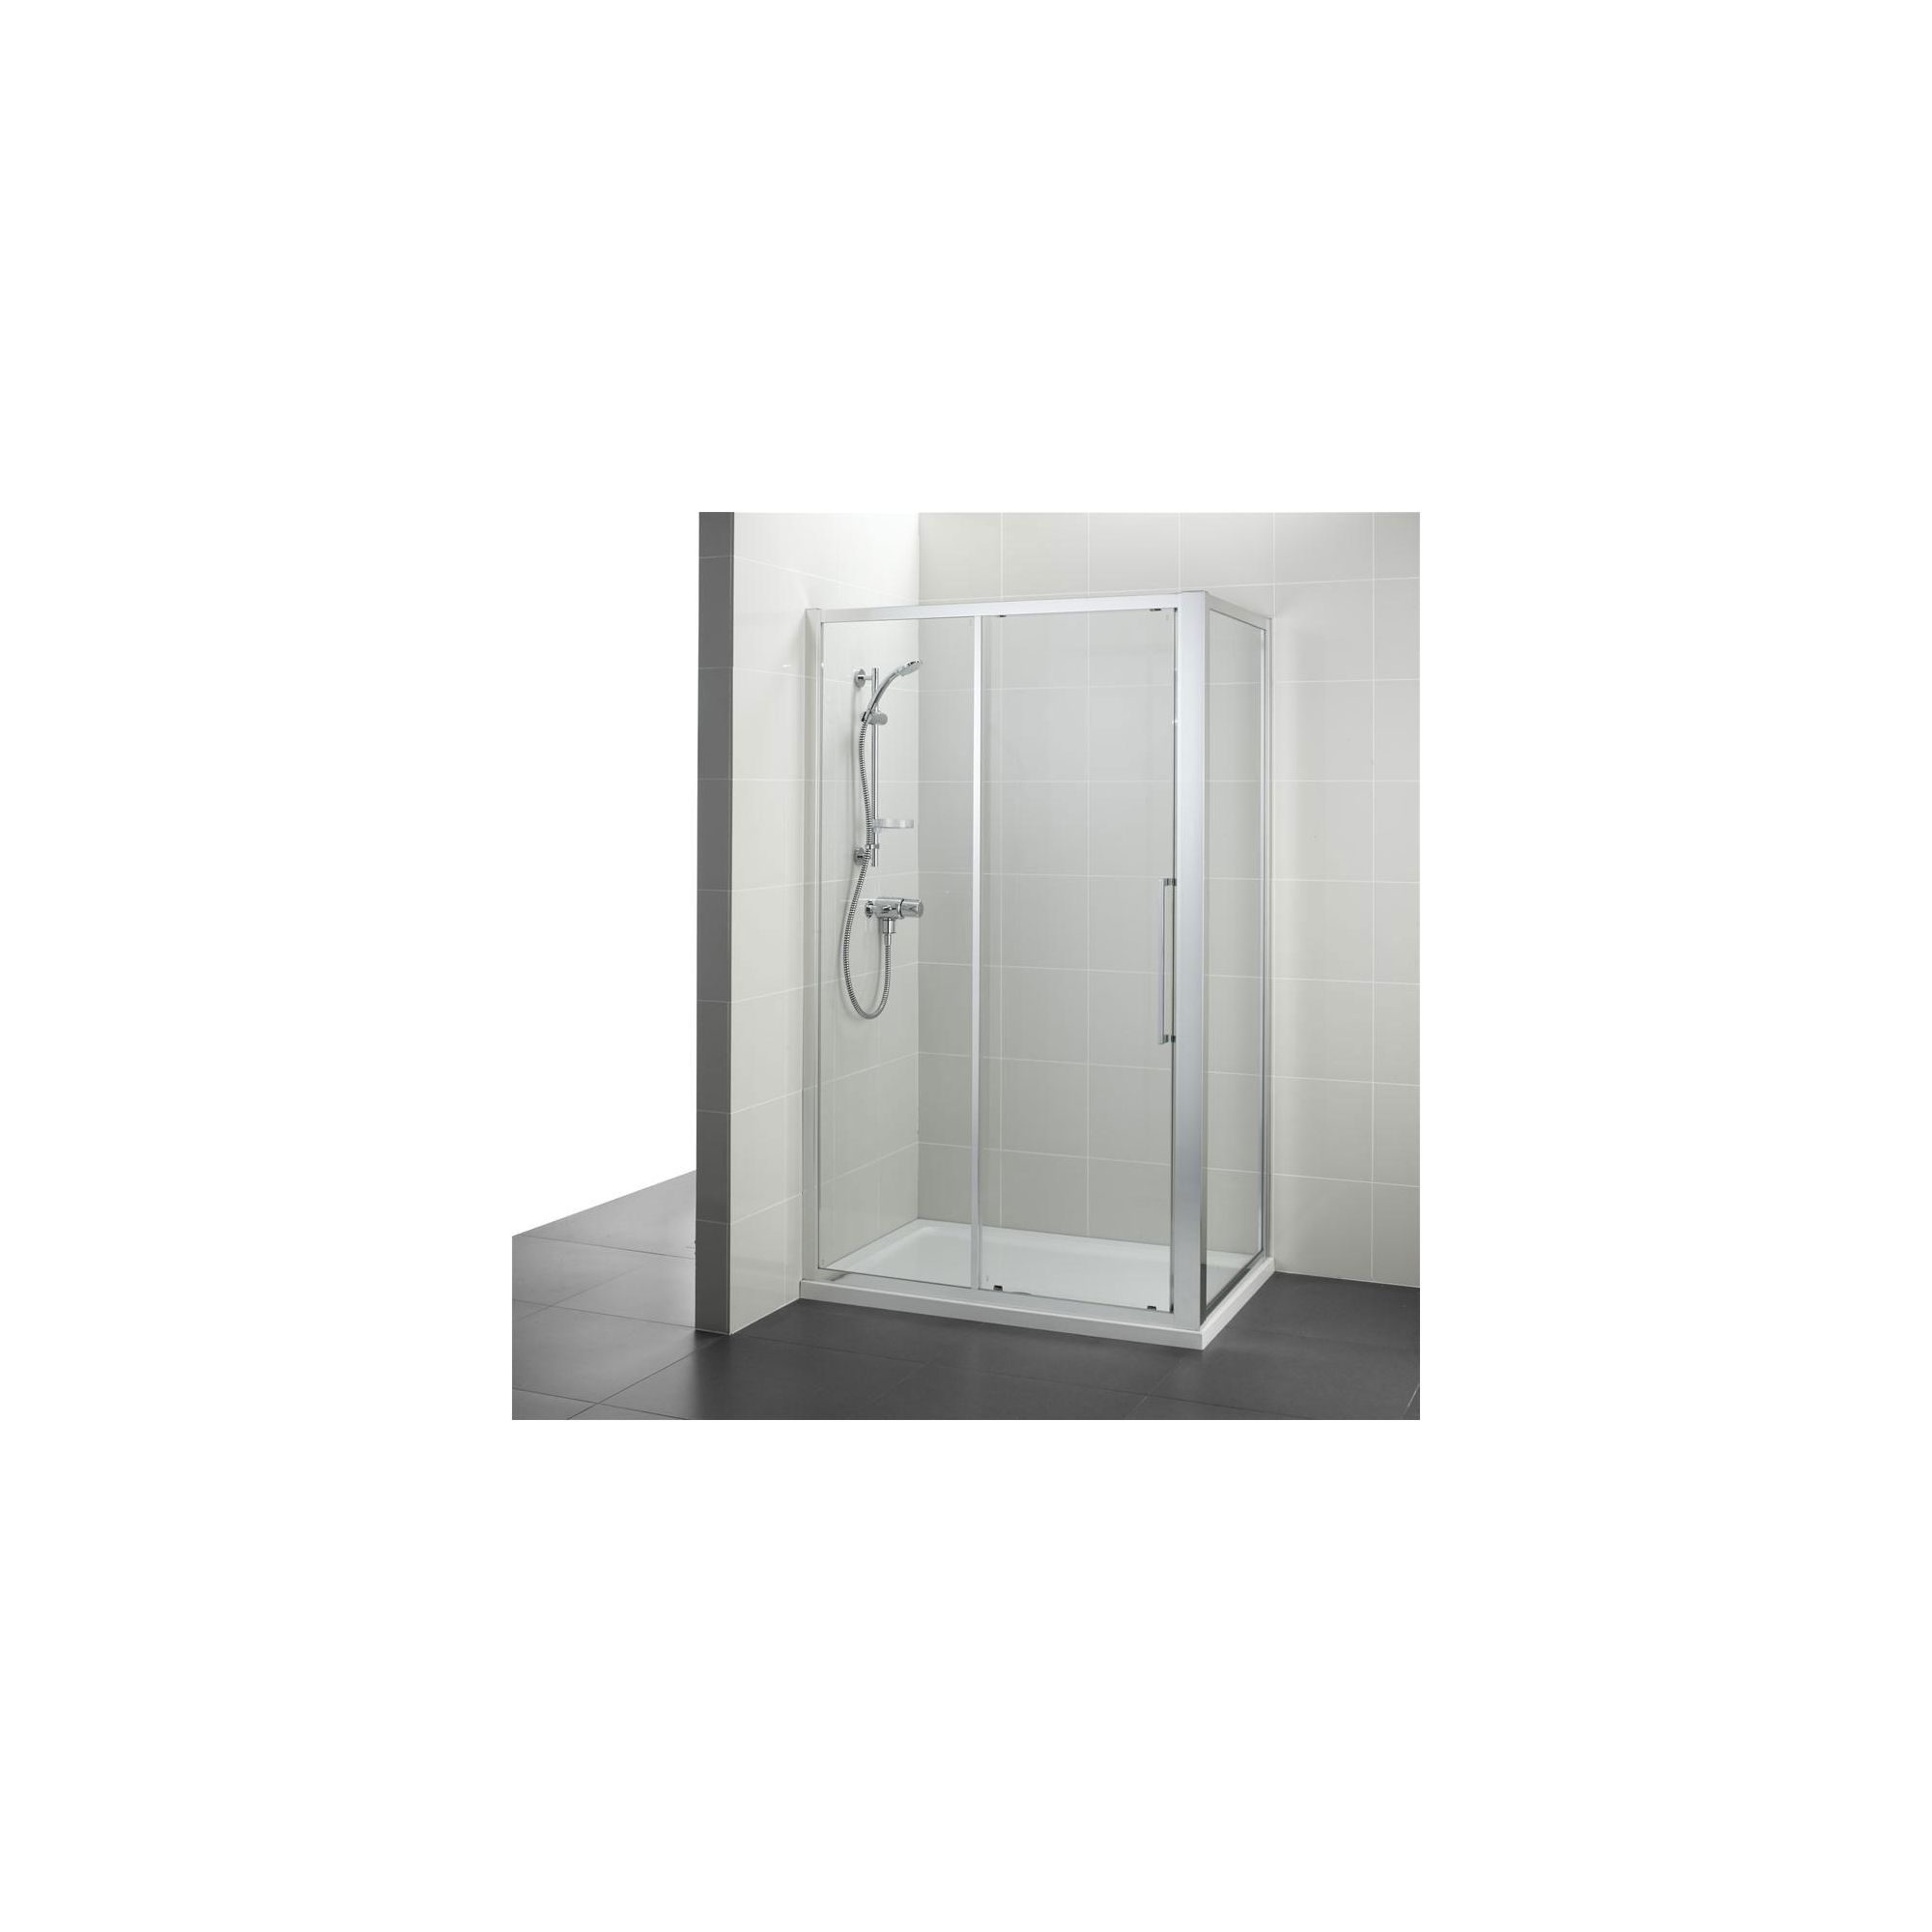 Ideal Standard Kubo Pivot Door Shower Enclosure, 800mm x 800mm, Bright Silver Frame, Low Profile Tray at Tesco Direct